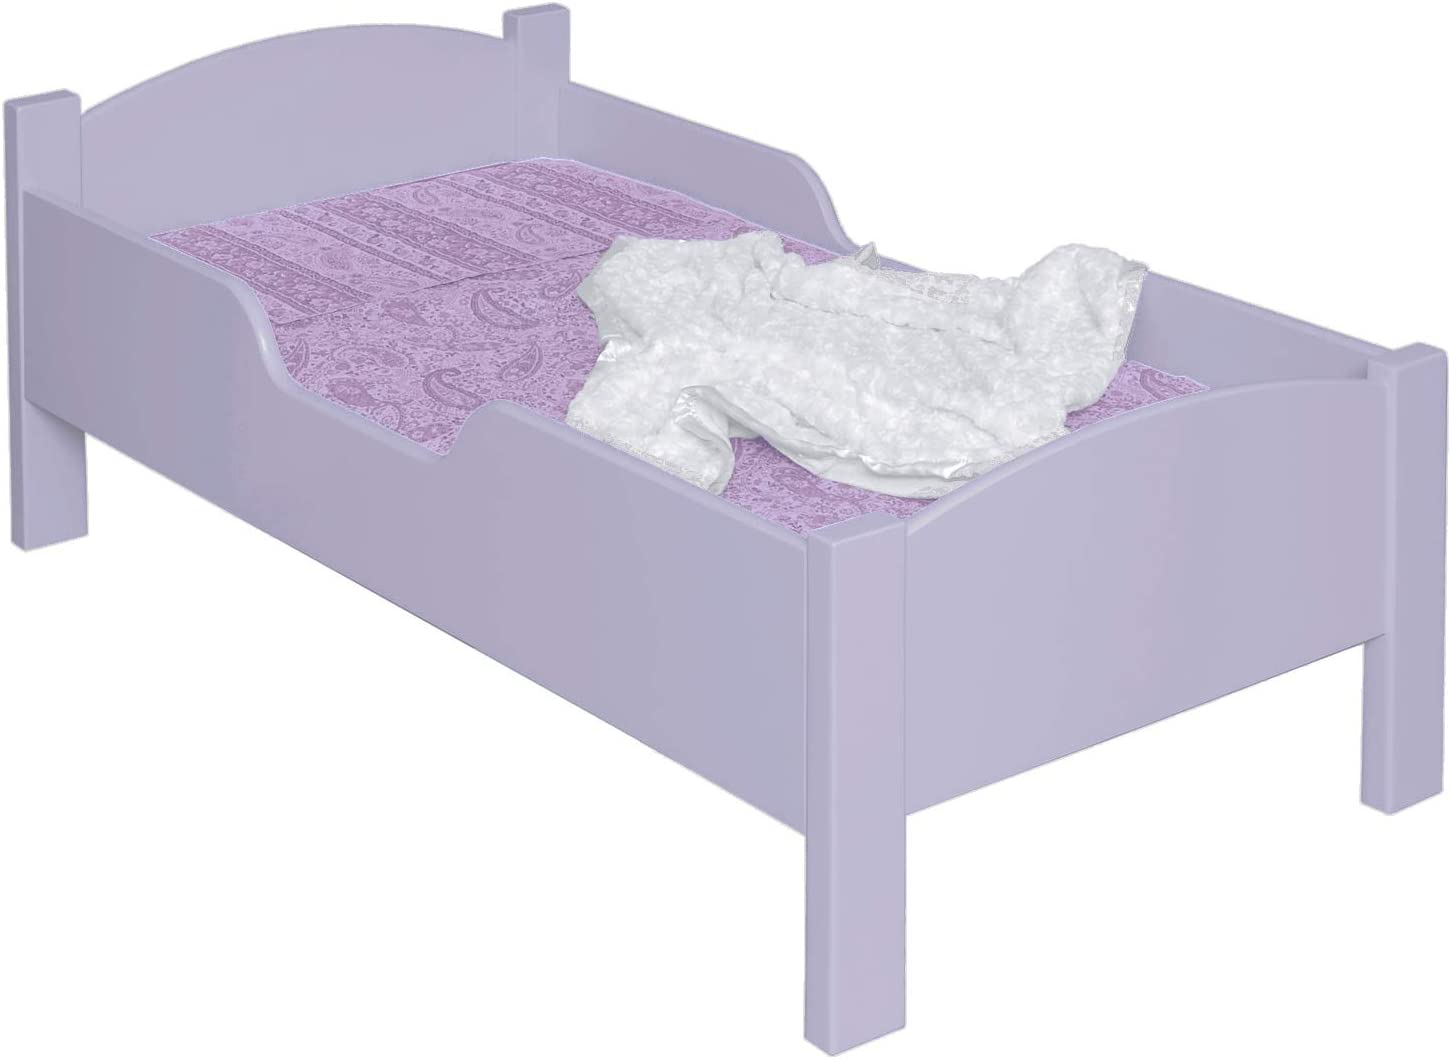 Little Colorado Traditional Toddler Bed, Unfinished